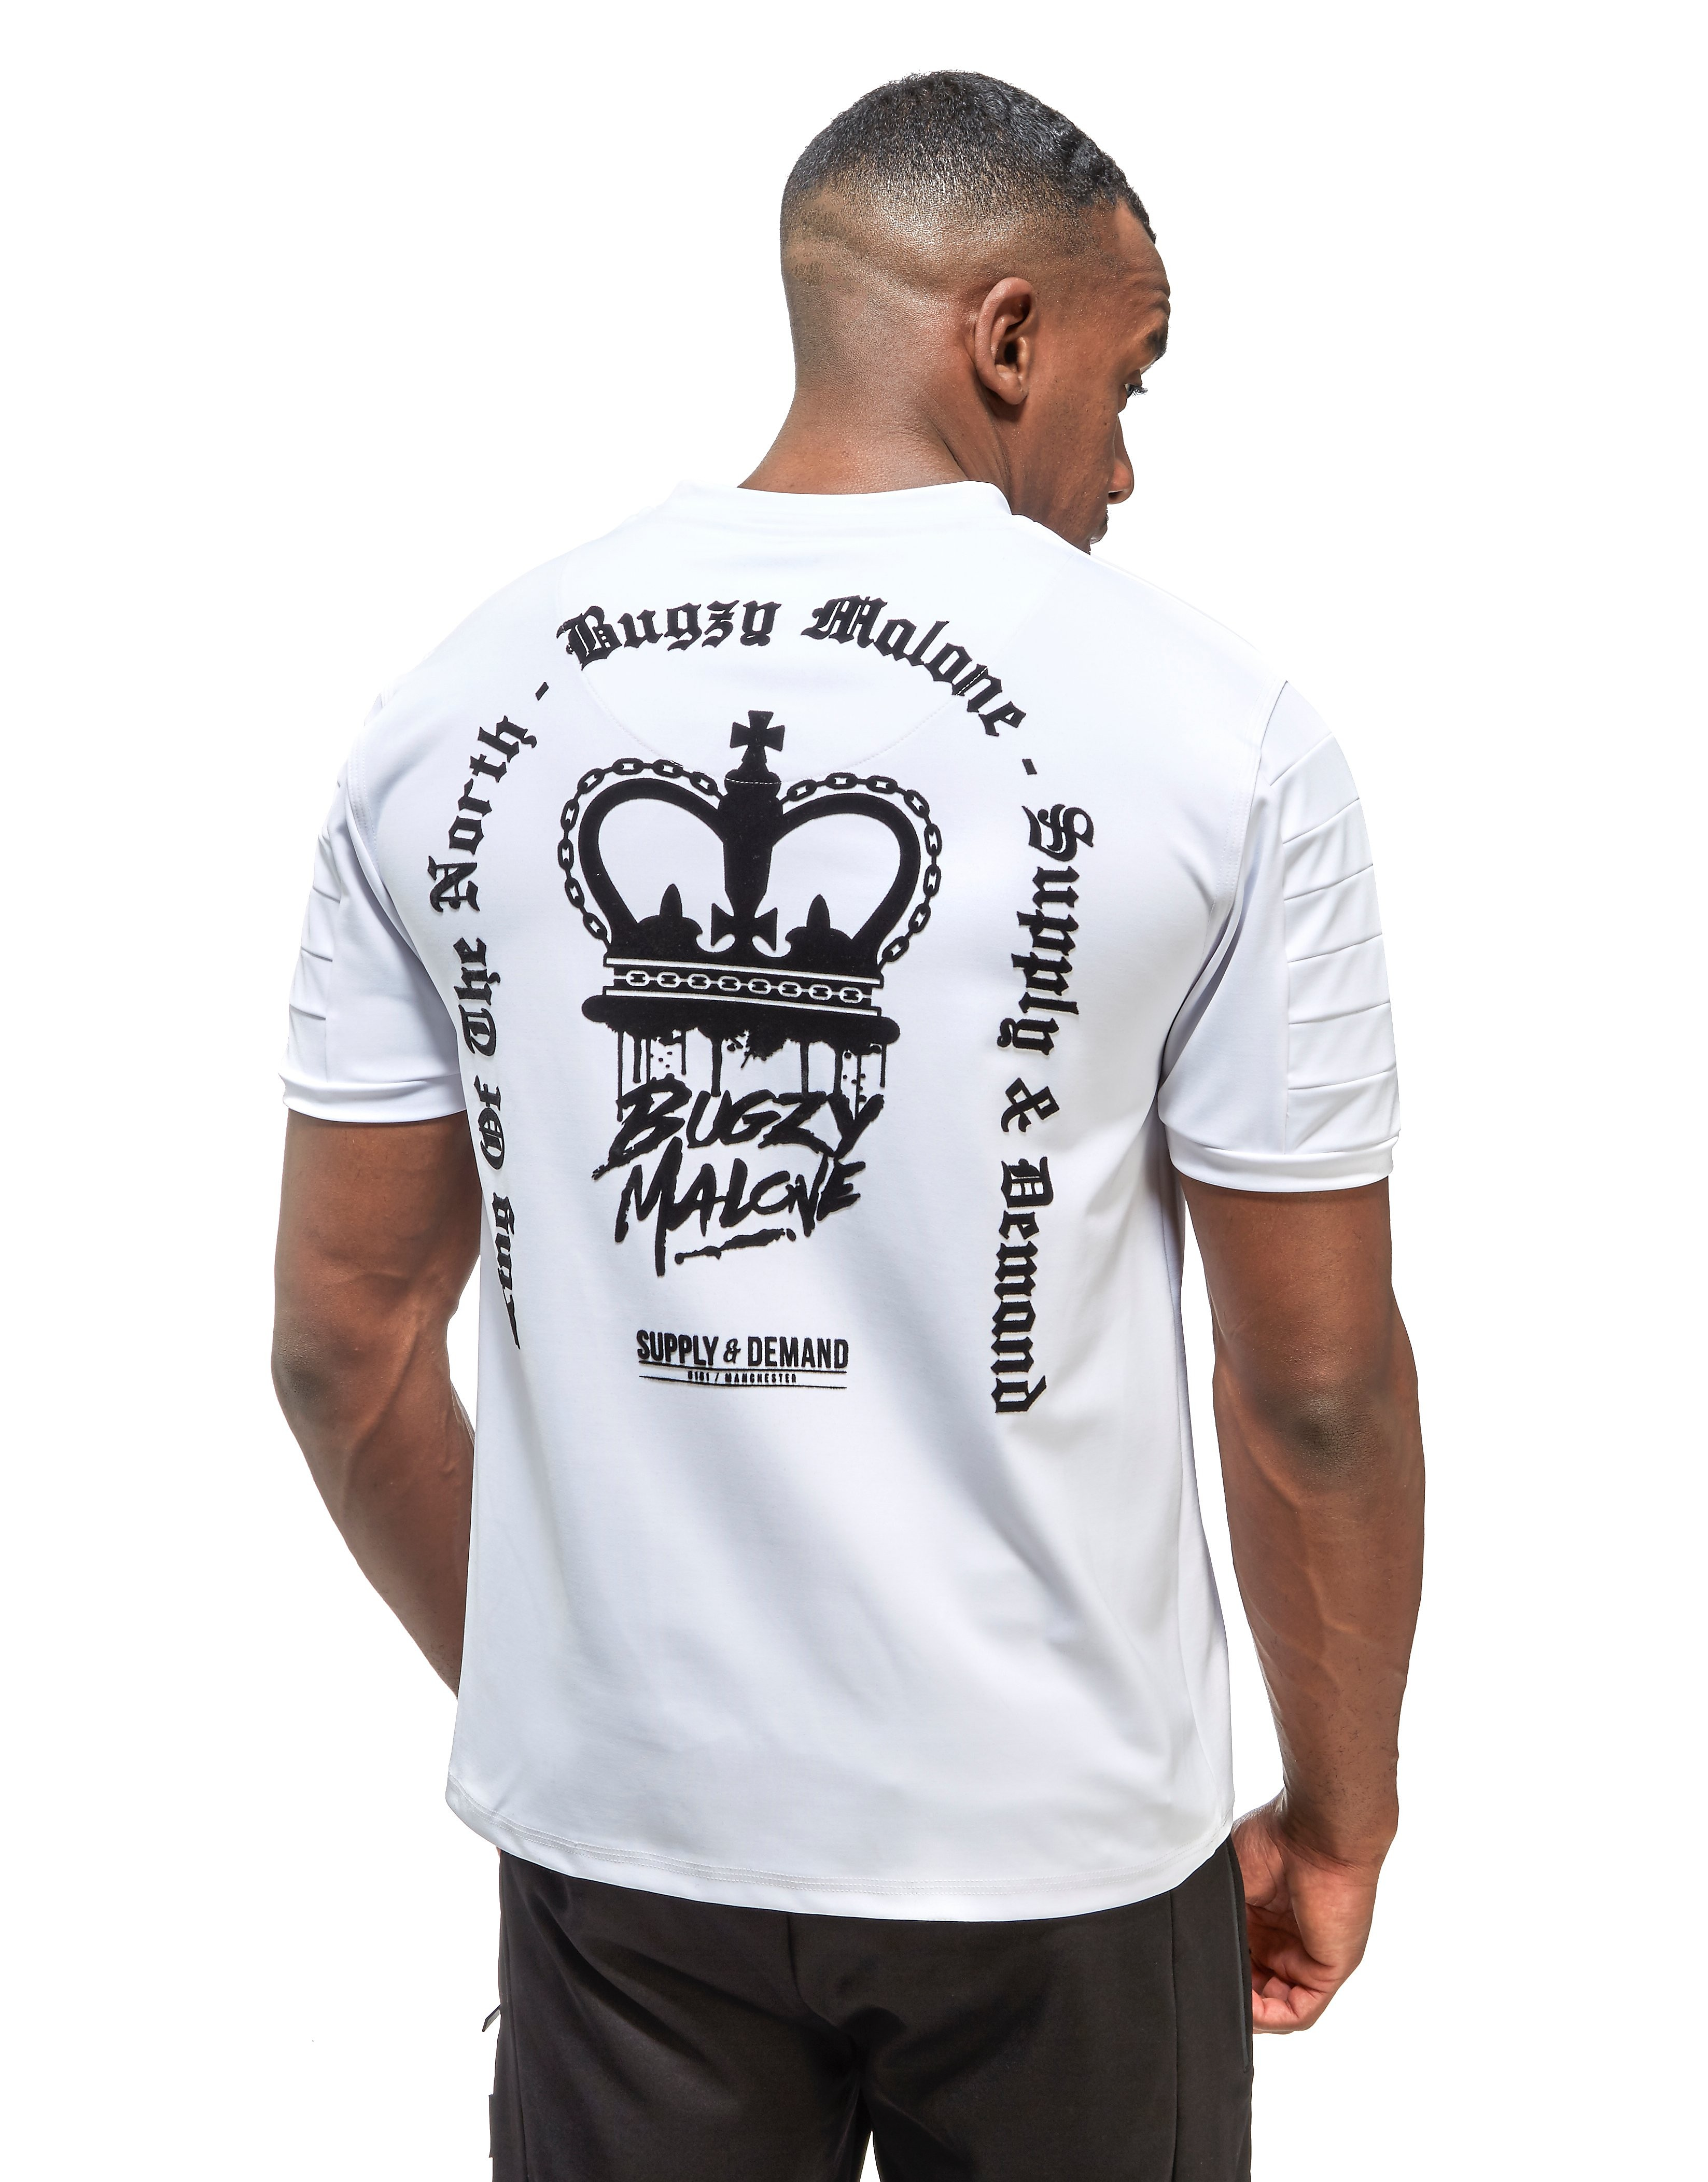 Supply & Demand Bugzy Malone King Gothic T-Shirt PRE ORDER